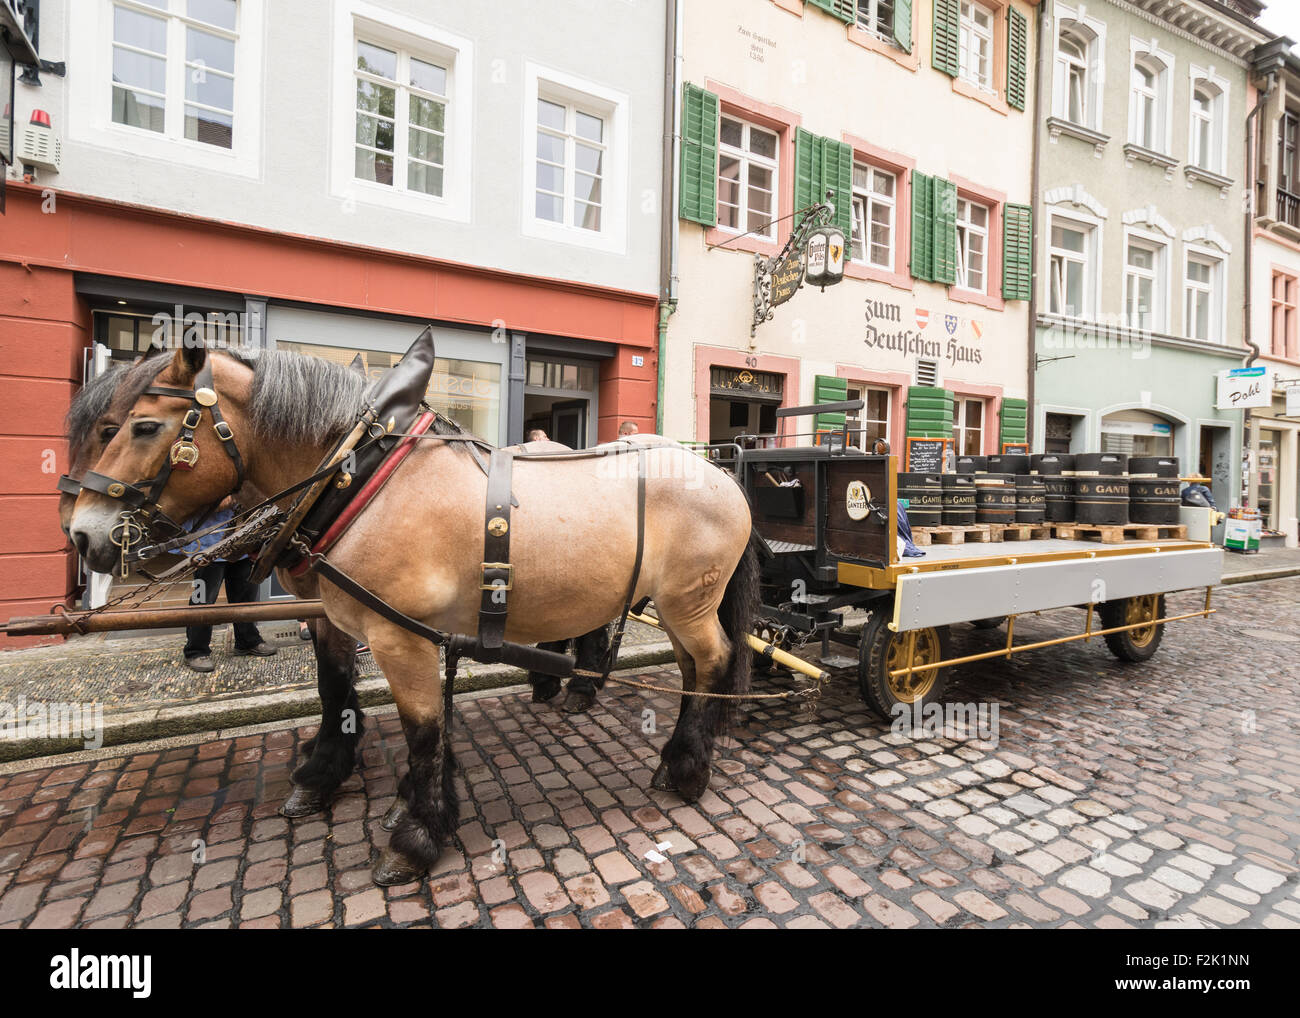 Barrels of Ganter Pils Pilsner delivered by horse on cobbled streets of Freiburg, Germany - Stock Image